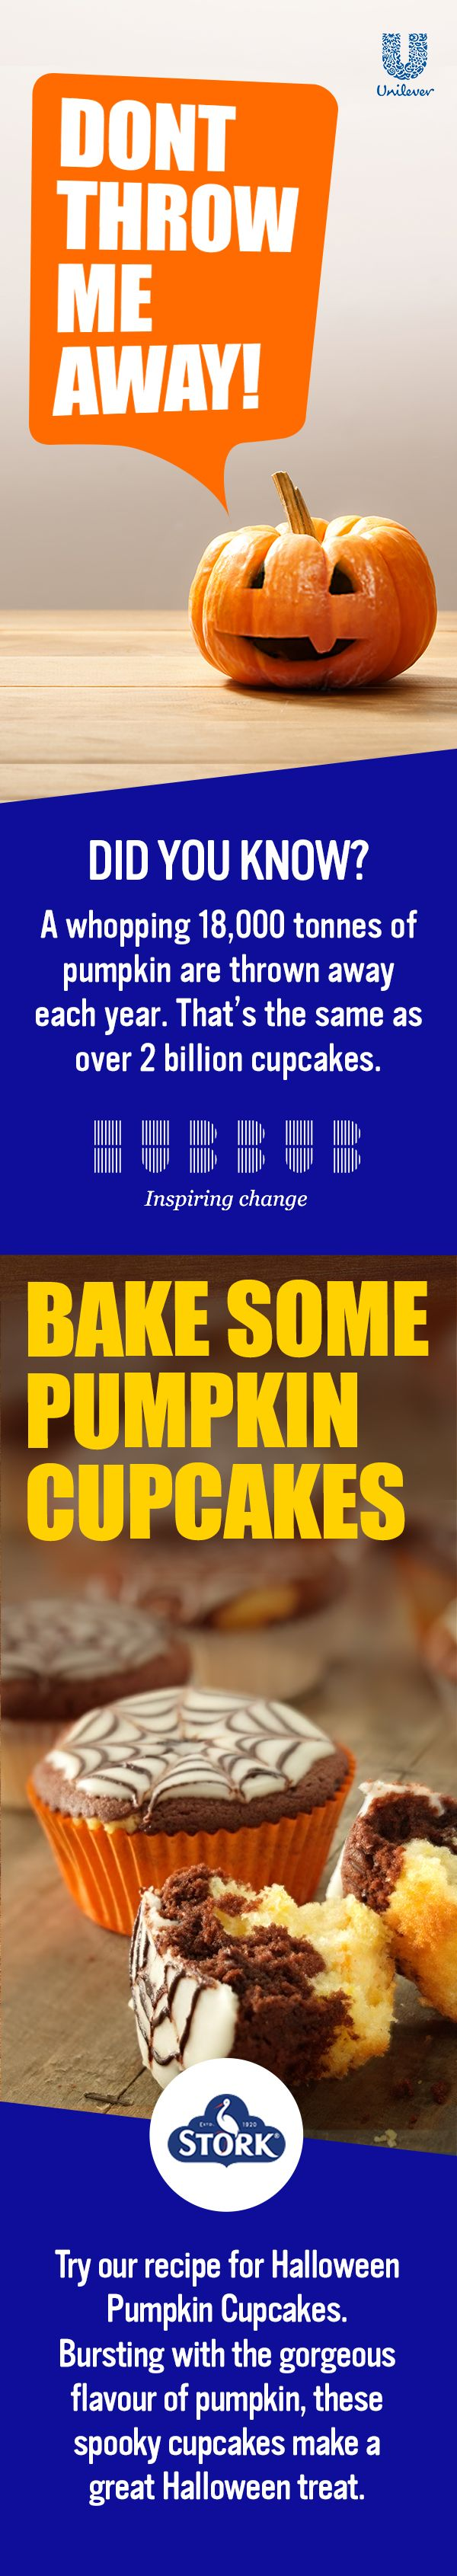 Did you know: A whopping 18,000 tonnes of Pumpkin are thrown away each year? That's the same as over 2 billion cupcakes. Join Hubbub and Unilever in inspiring change. Get involved here: https://brightfuture.unilever.co.uk/stories/494523/Turn-your-carvings-into-cravings-this-Halloween.aspx. These delicious Stork Halloween Cupcakes are bursting with flavor. The orange infused icing sugar combines with the chocolate for each mouthful. These pumpkin cupcakes can be your spooky surprise at…